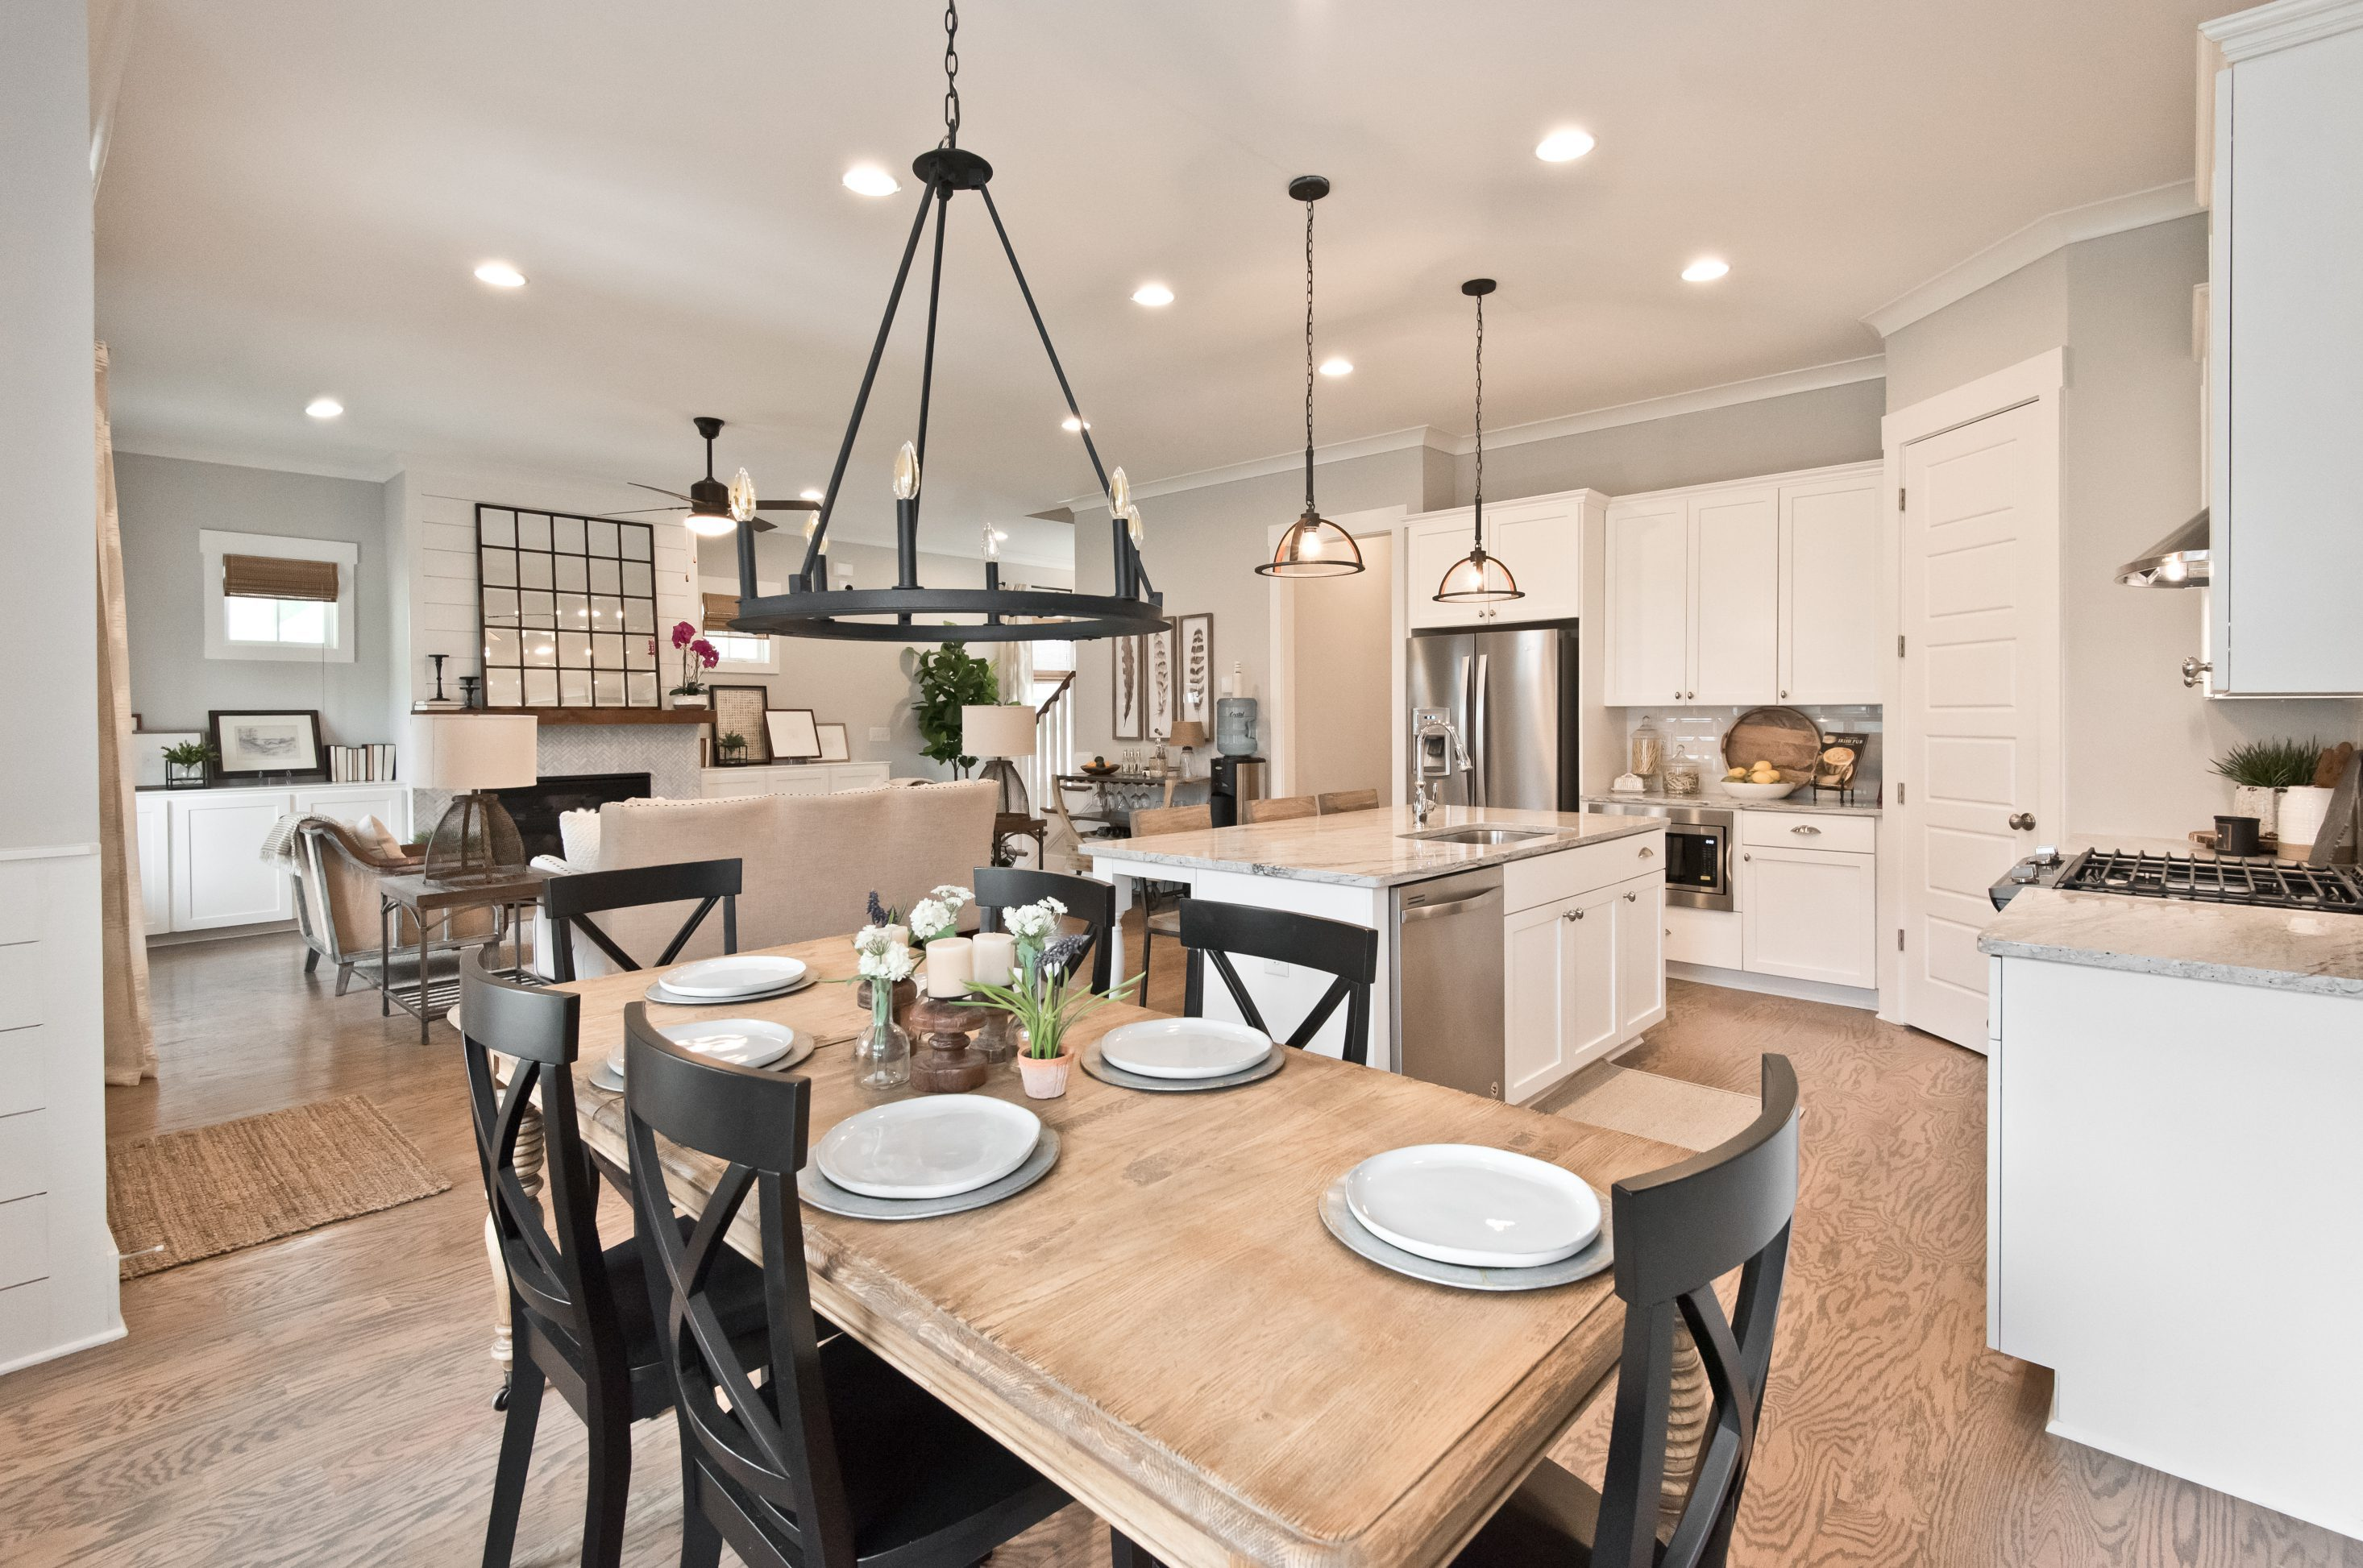 Stupendous Brock Built At The 2019 Atlanta Parade Of Homes Brock Built Interior Design Ideas Gentotryabchikinfo